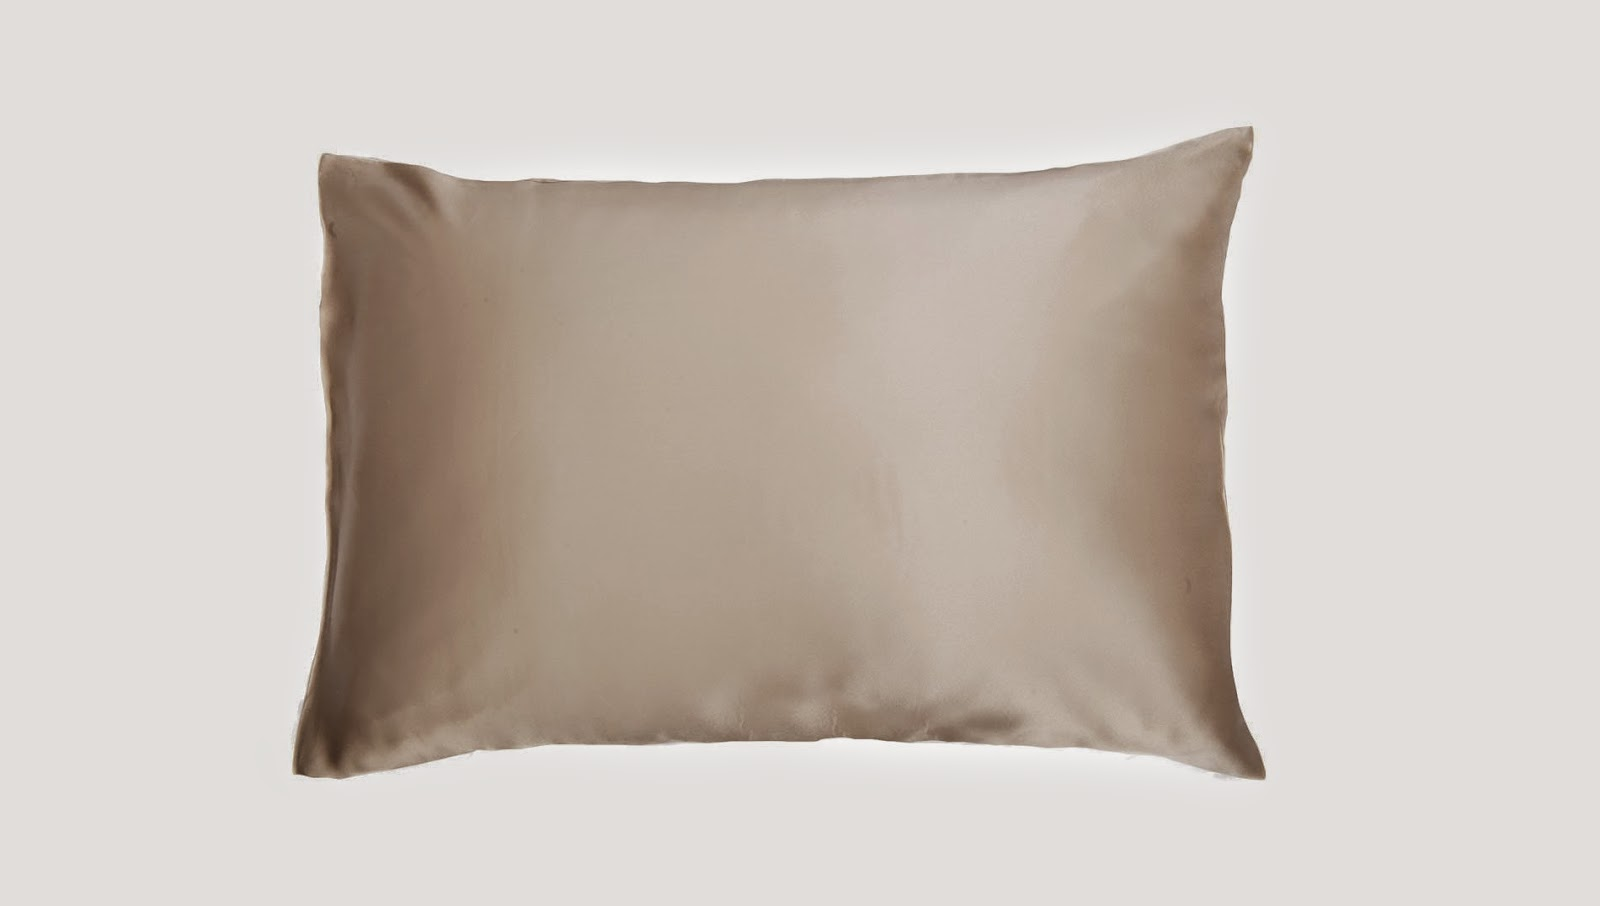 slip pillowcase liberty pure belle pillow case silk caramel product